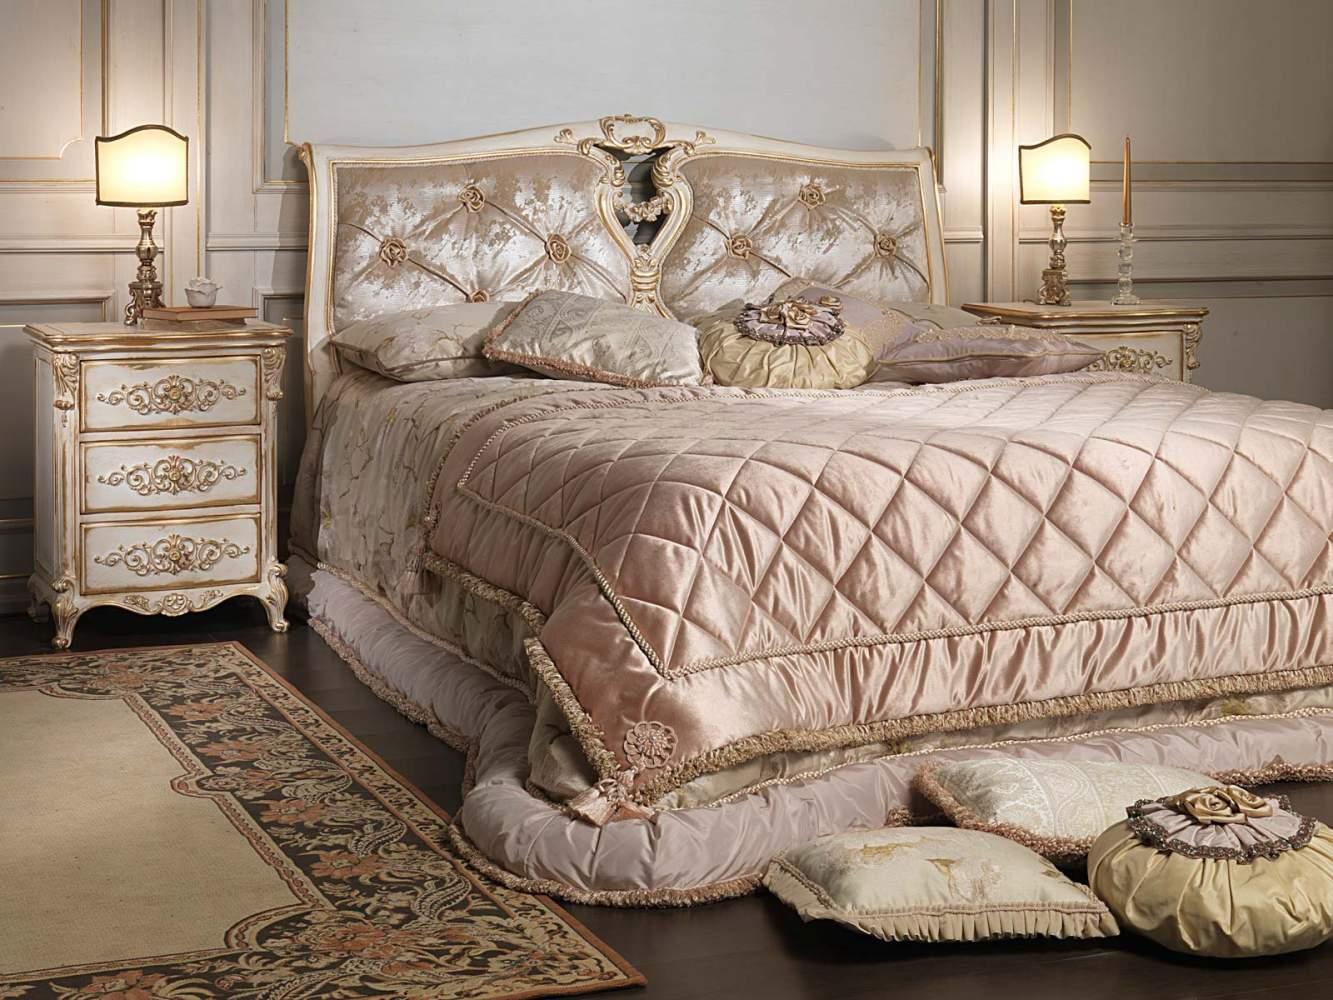 Classic Louis XVI bedroom, bed with capitonnè headboard and carved wood night table